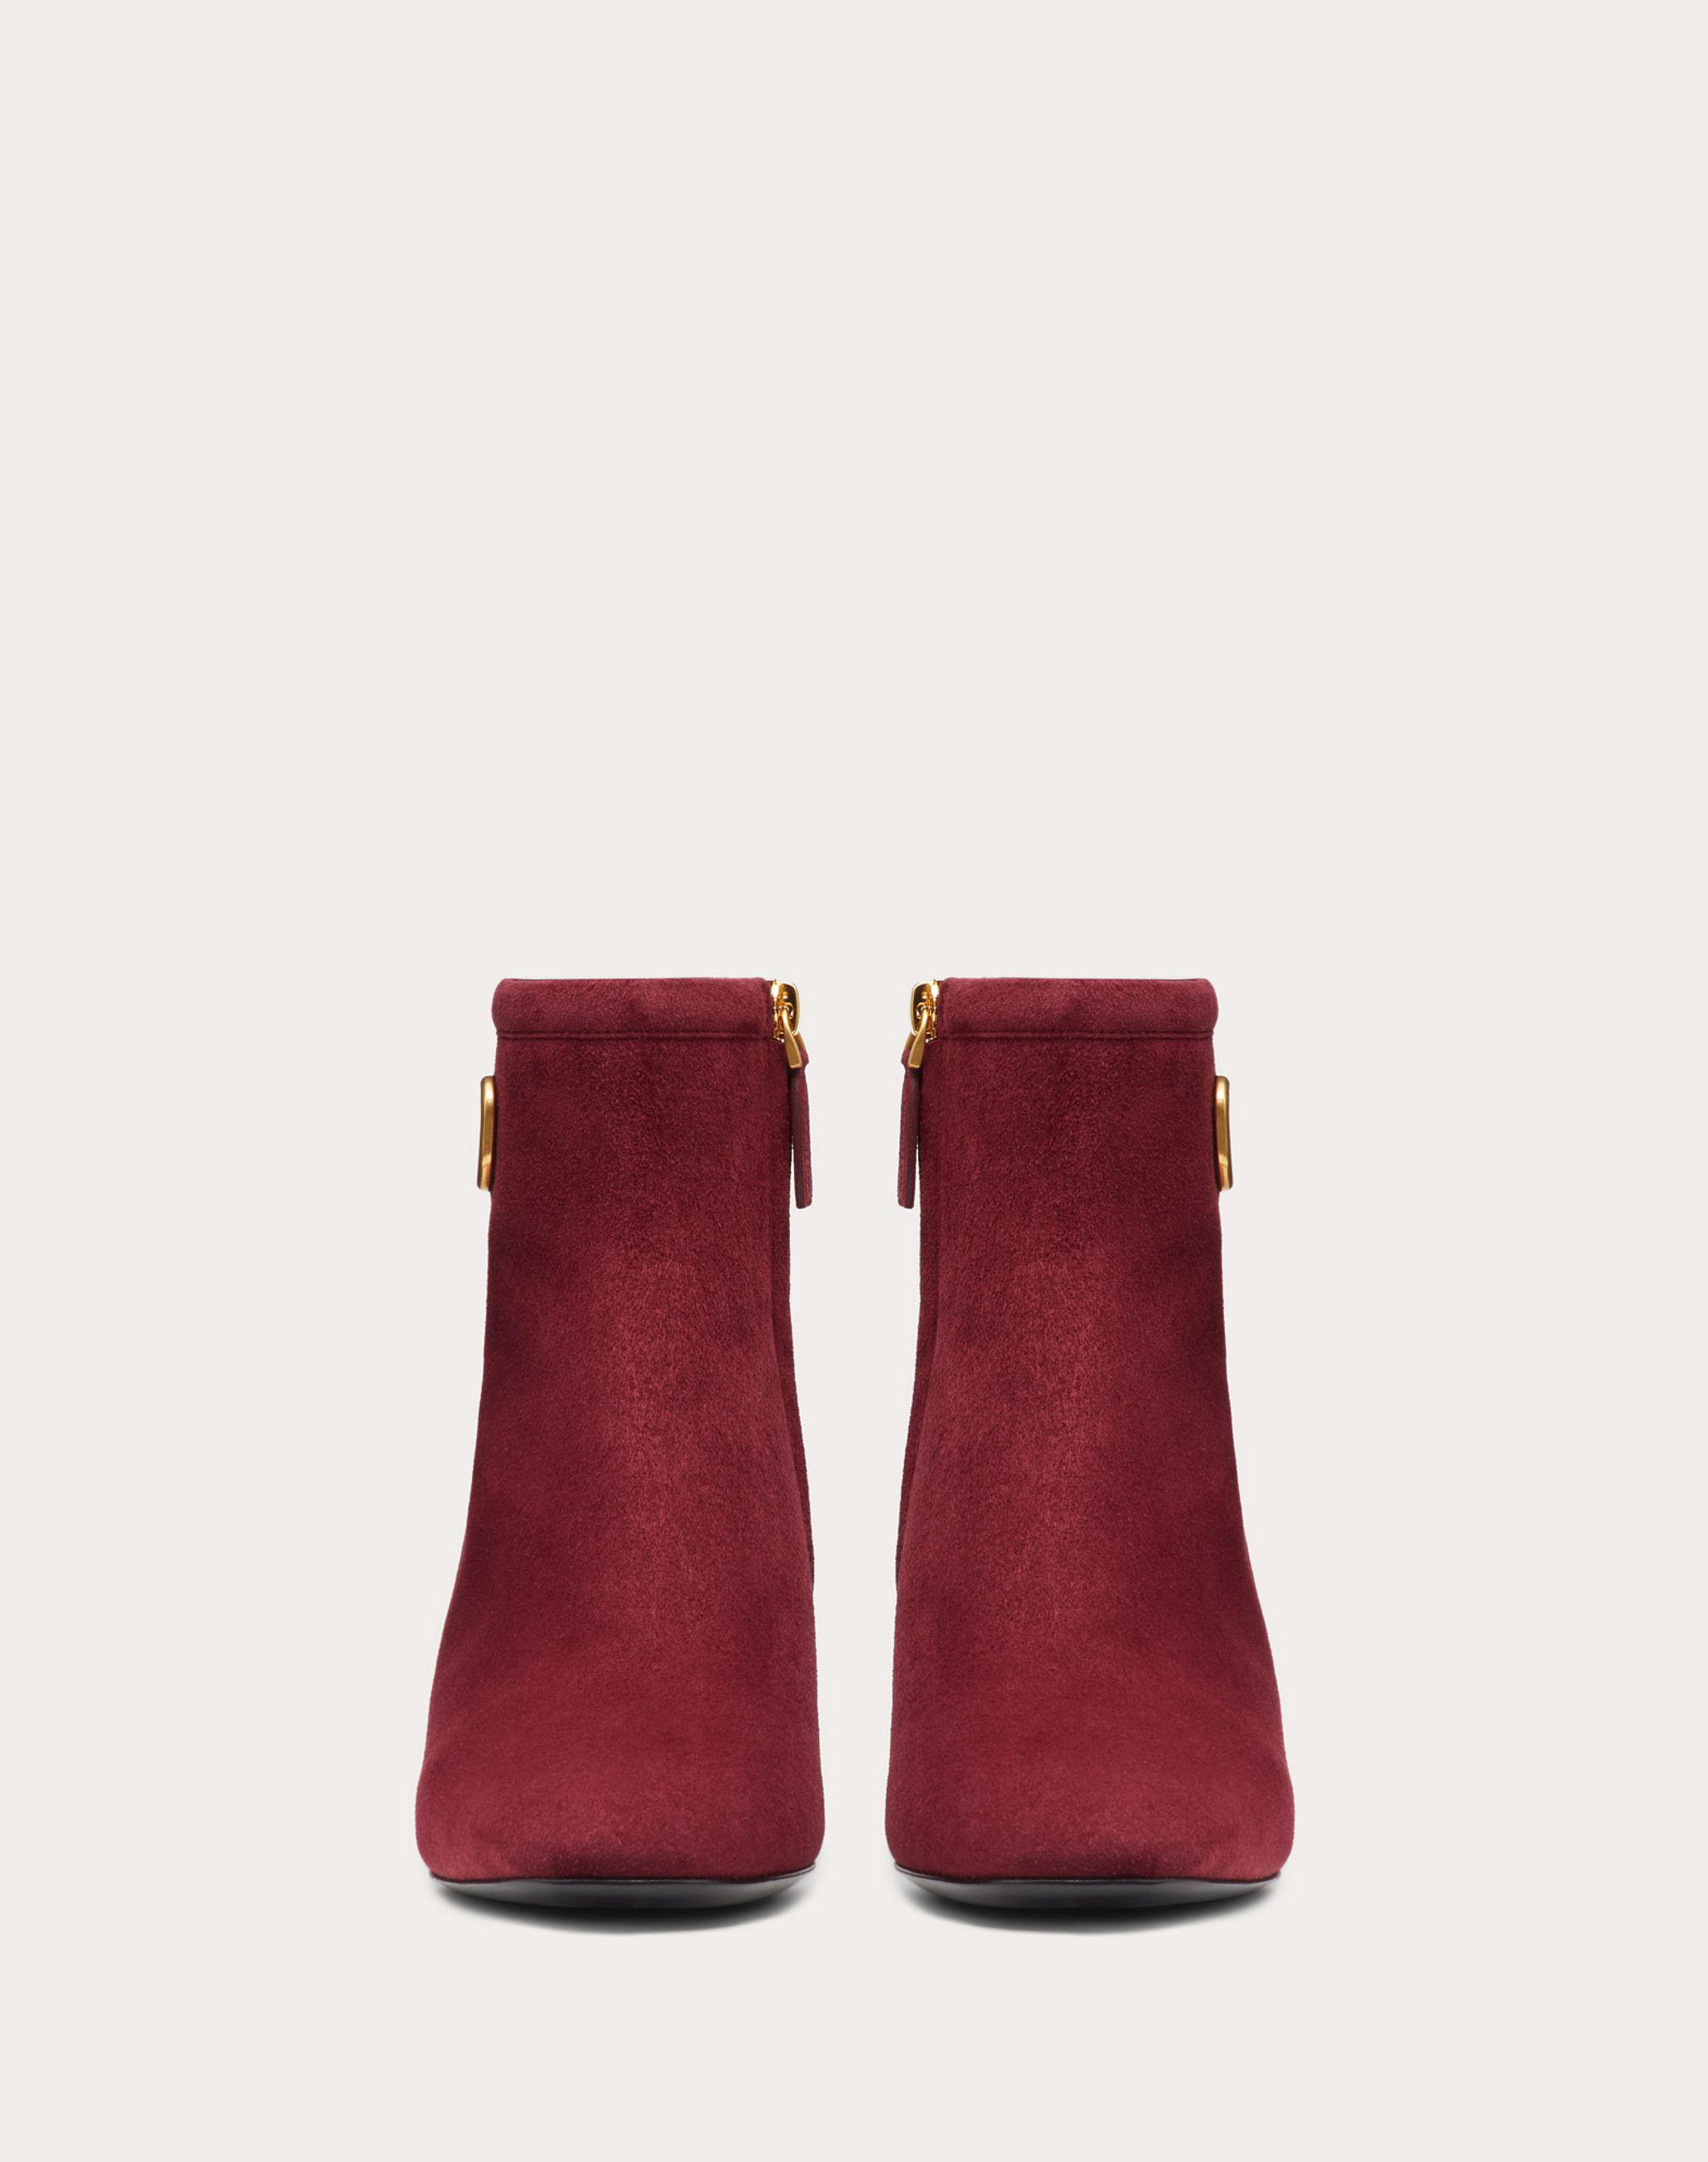 VLogo Signature Suede Ankle Boot 45 mm / 1.8 in. 3